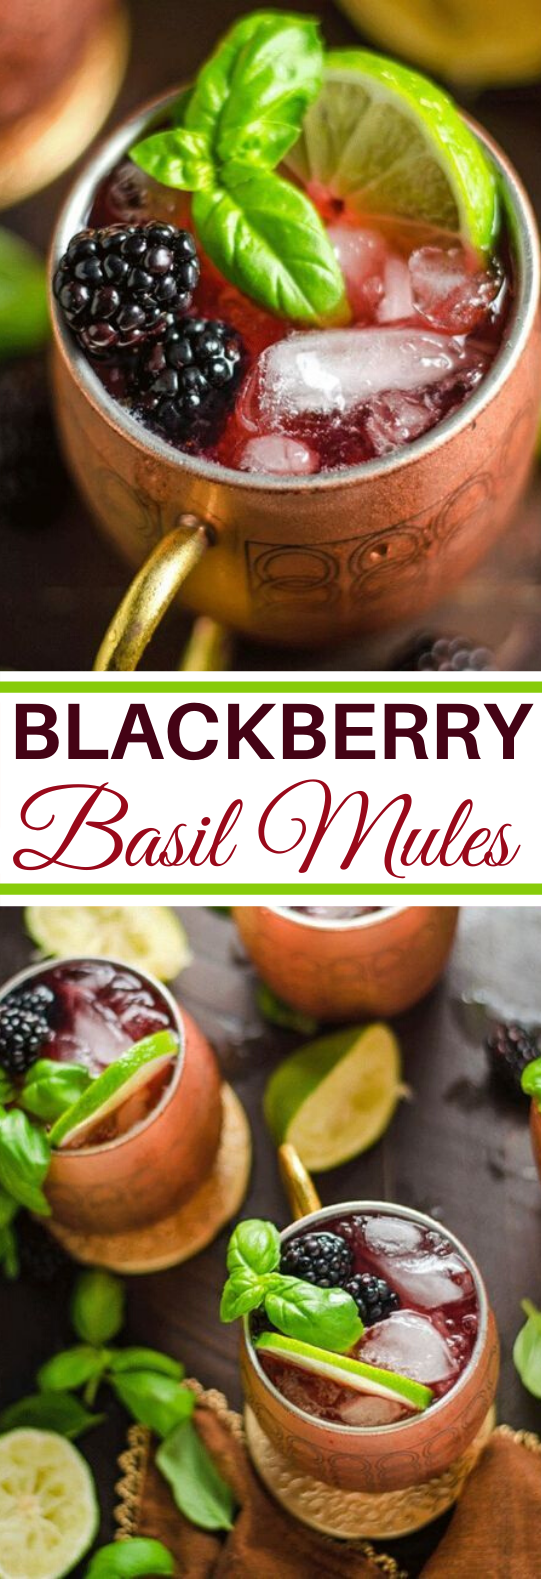 Blackberry Basil Moscow Mules #drink #alcohol #refreshing #beverages #summer